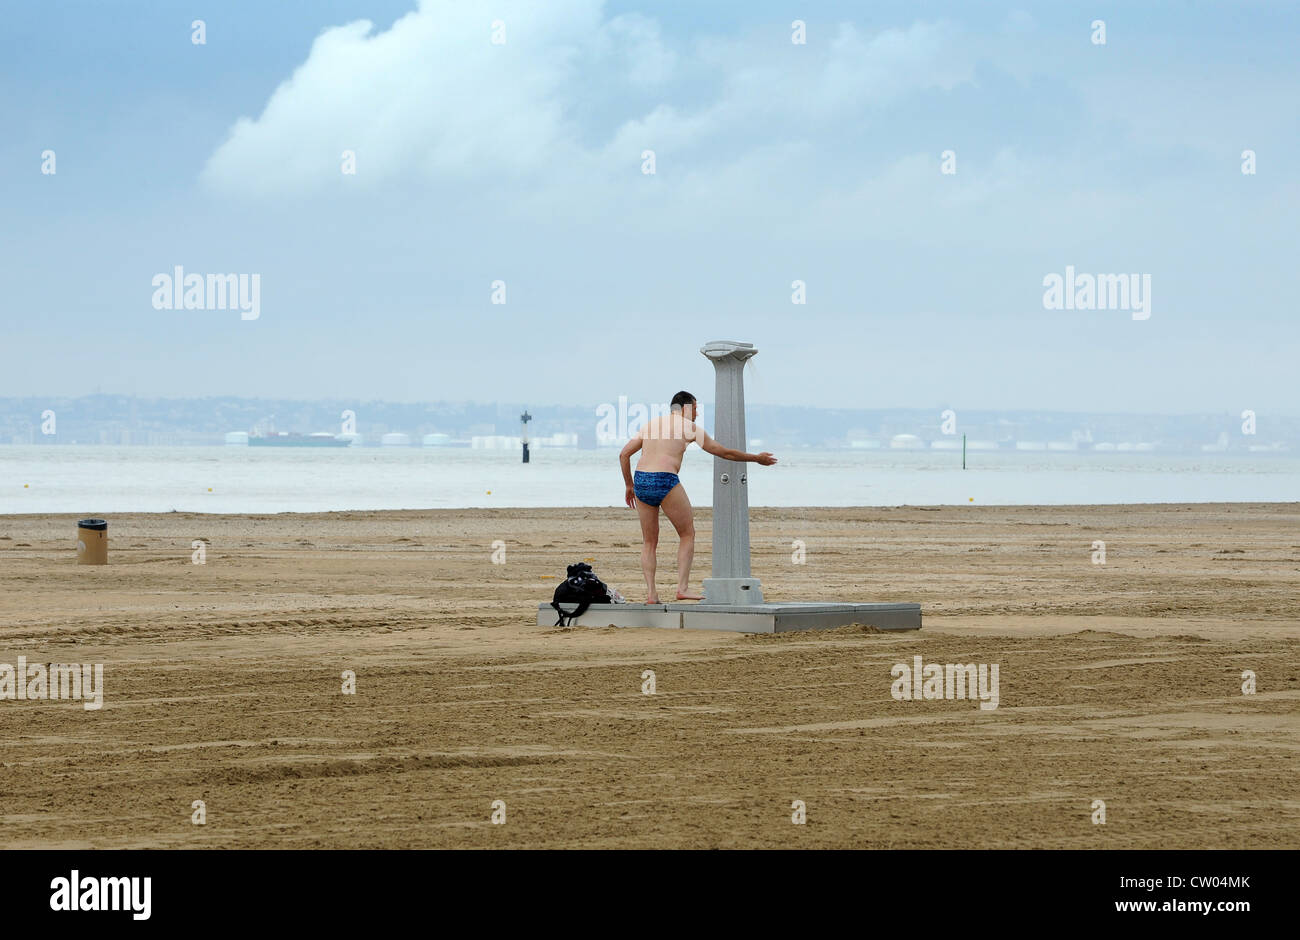 Man taking a shower on a deserted beach at Deauville France - Stock Image